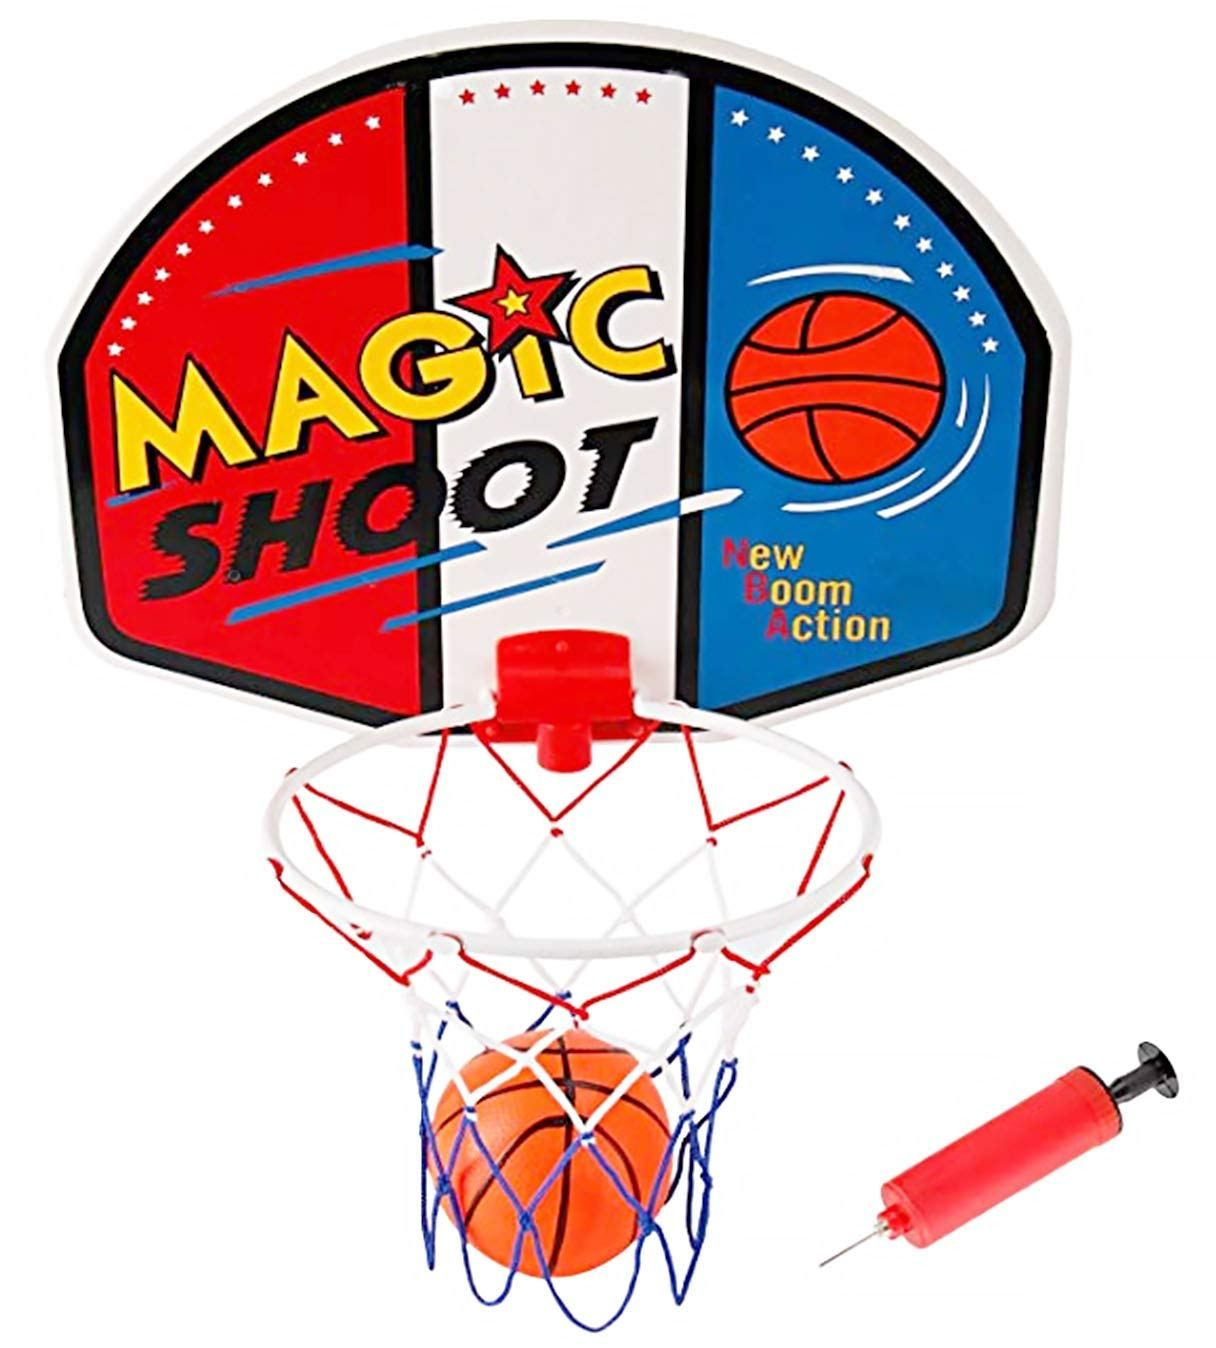 Boughtagain Awesome Goods You Bought It Again Mini Basketballs Mini Basketball Hoop Basketball Hoop